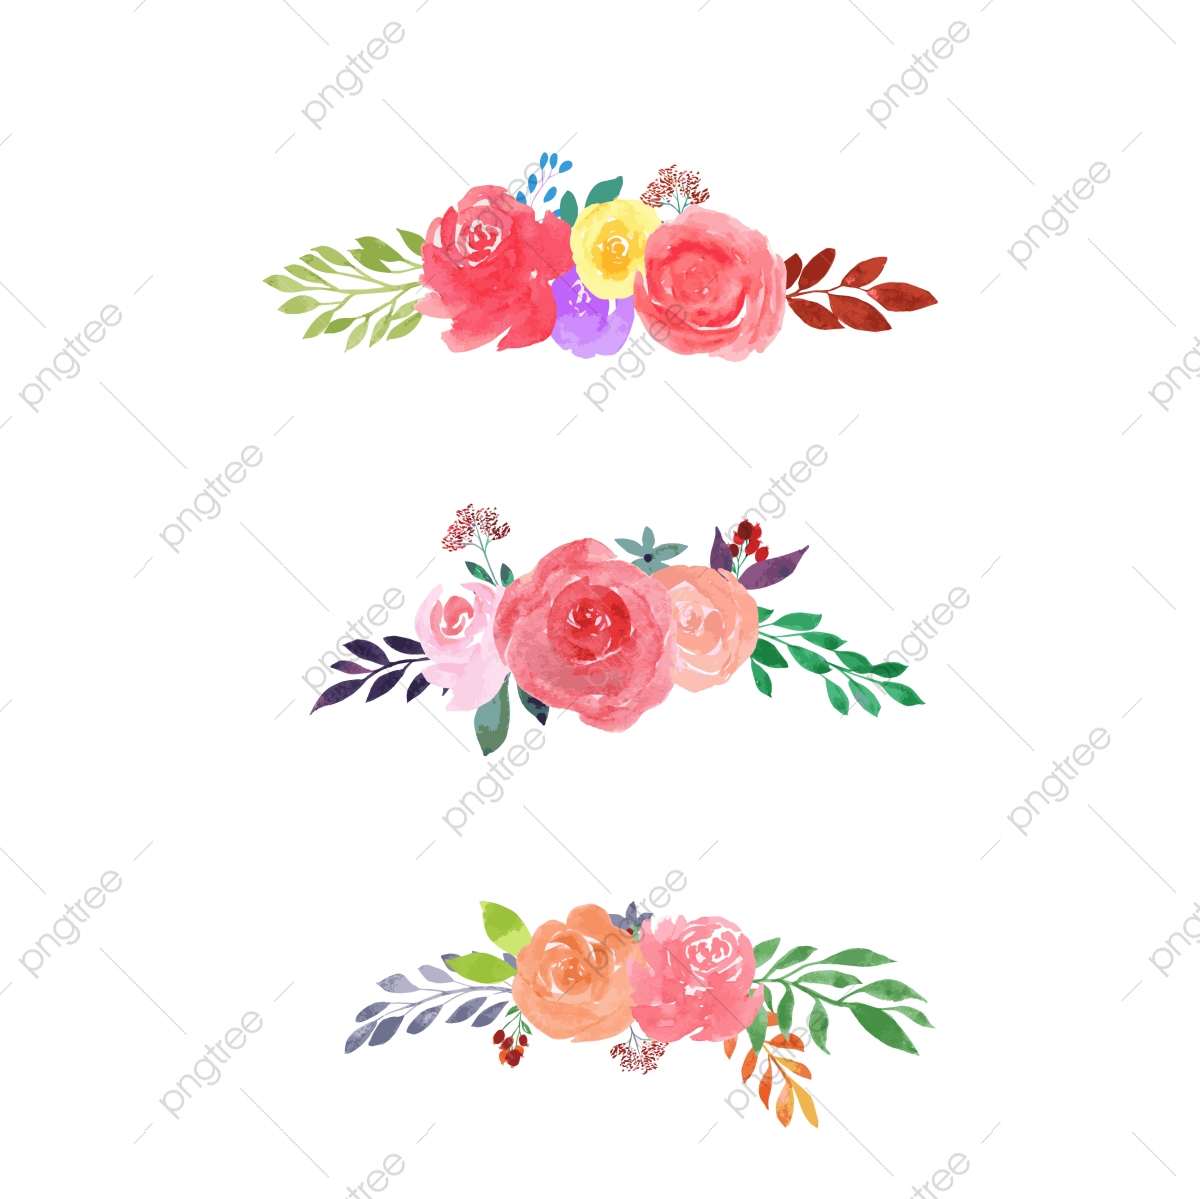 Hand Painted Floral Bouquet Collection Watercolor Flowers Flower